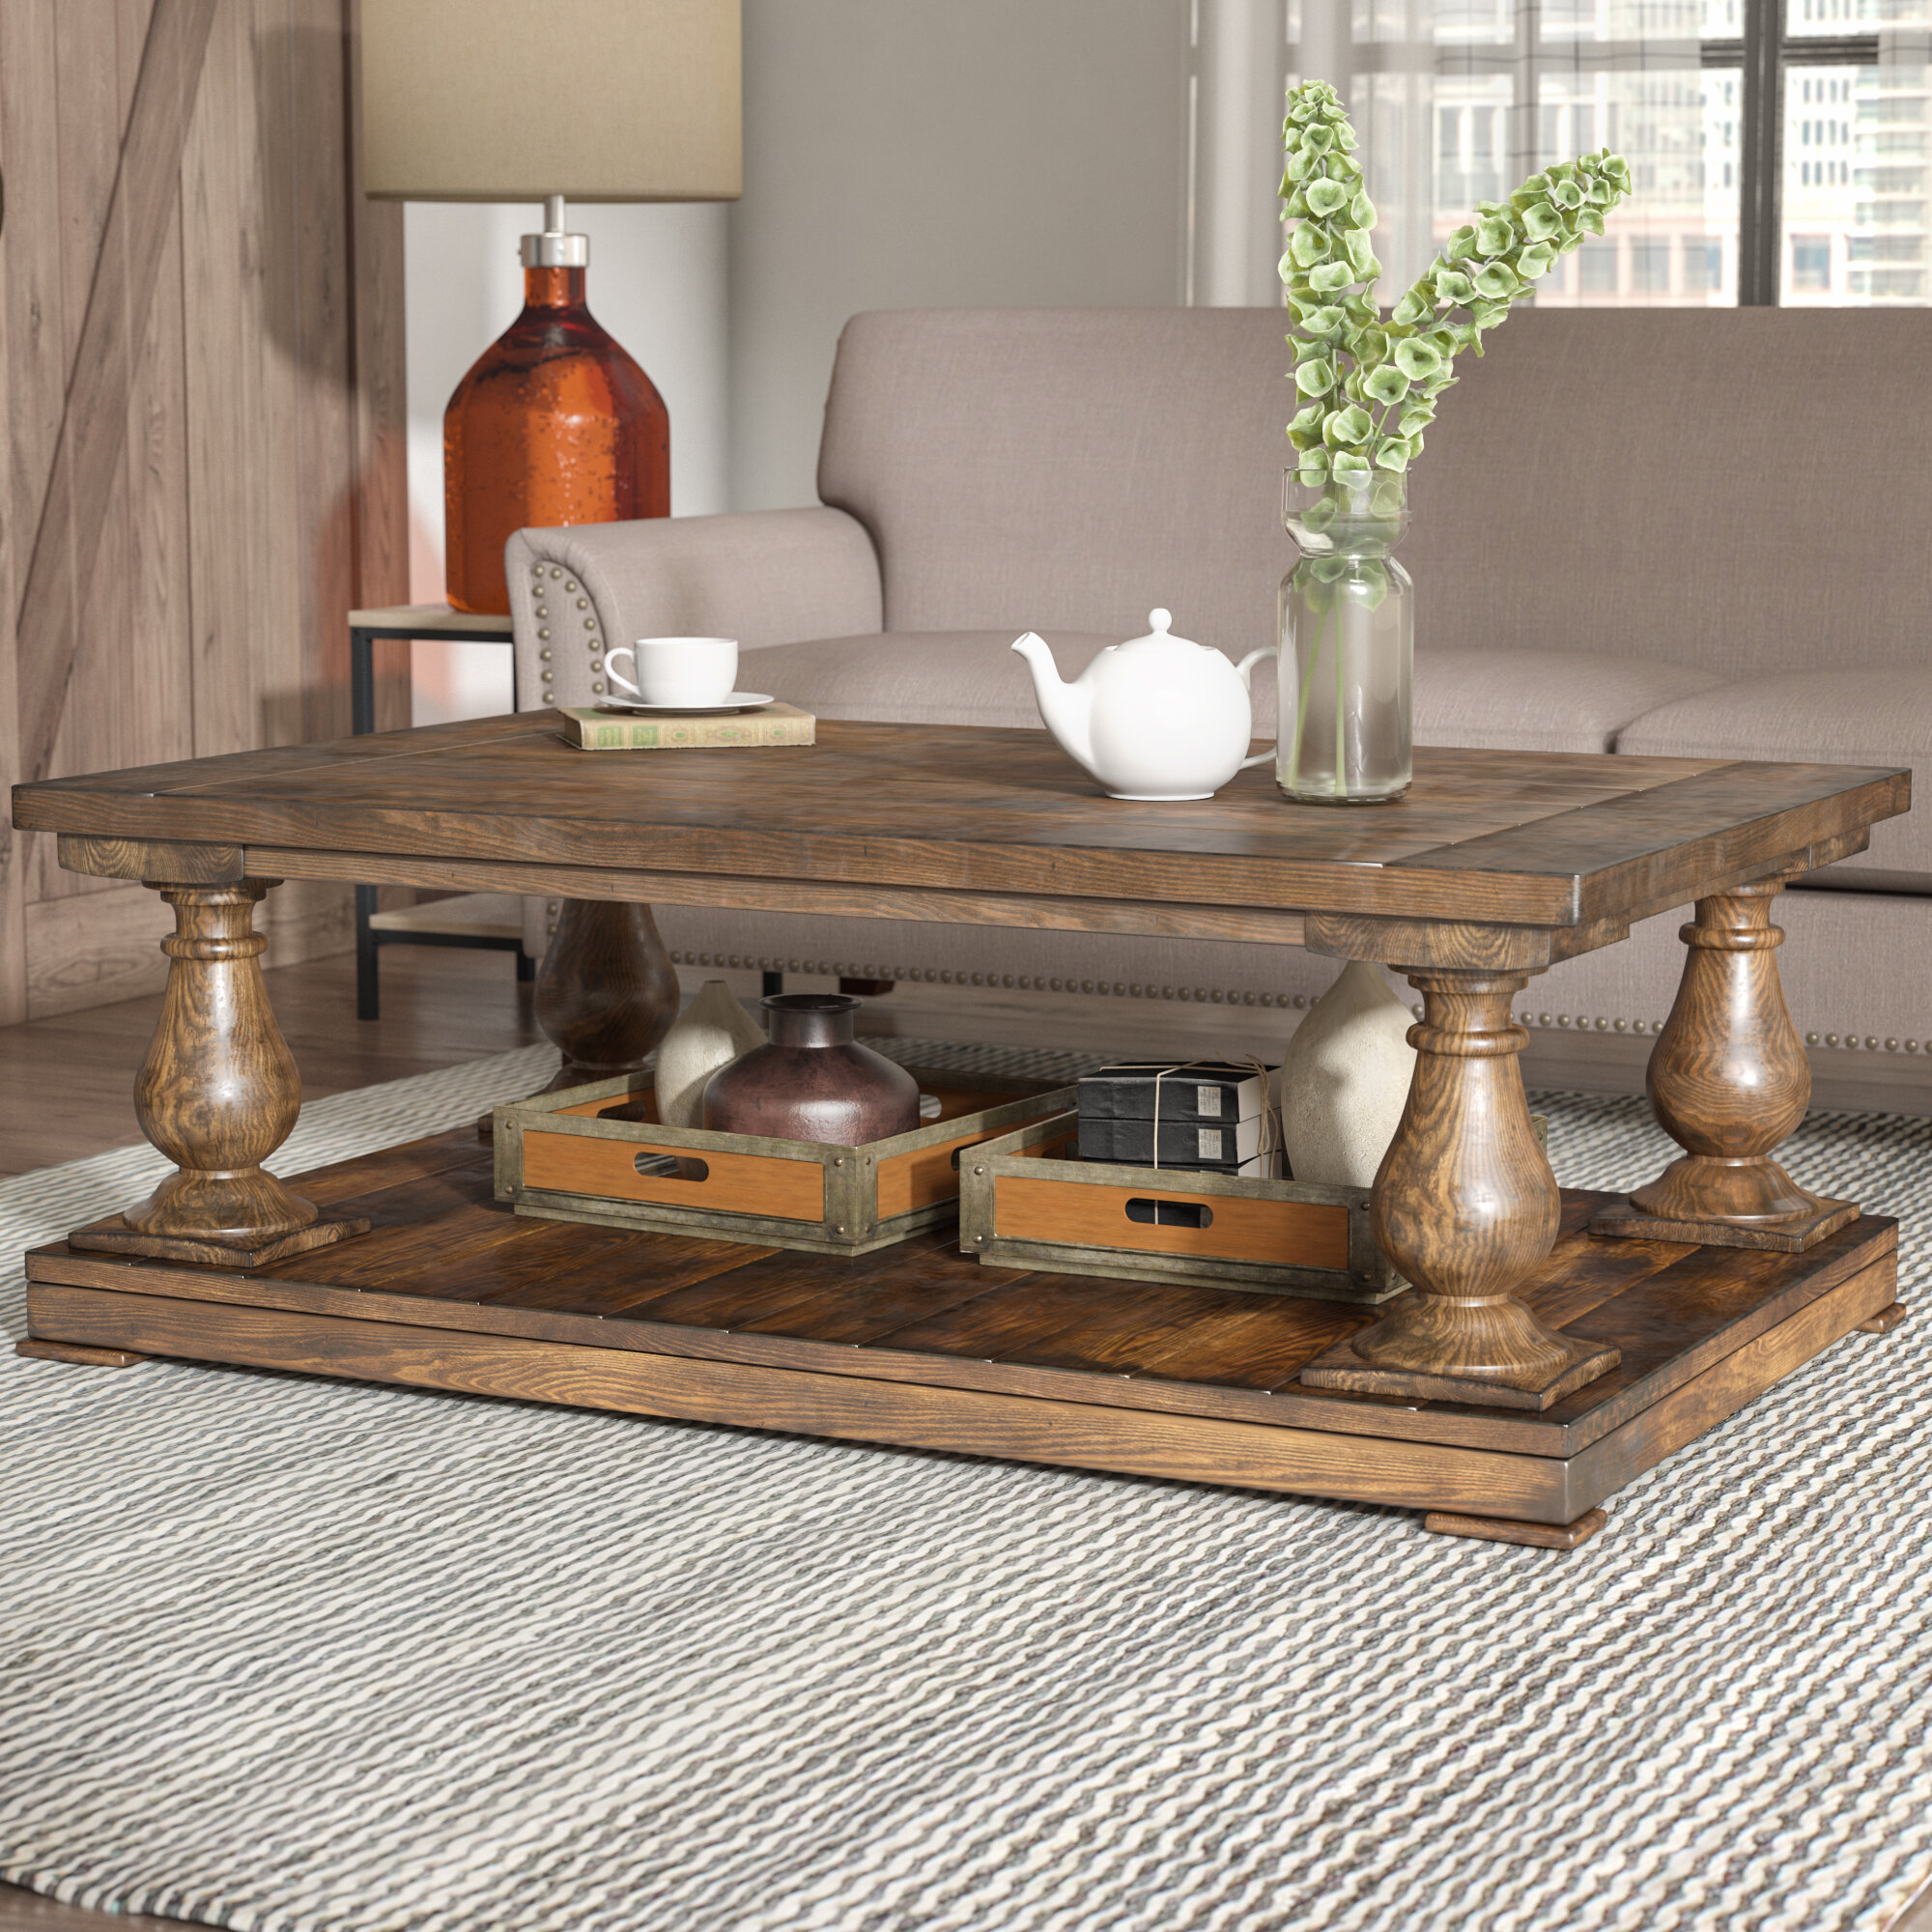 Extra Coffee Table